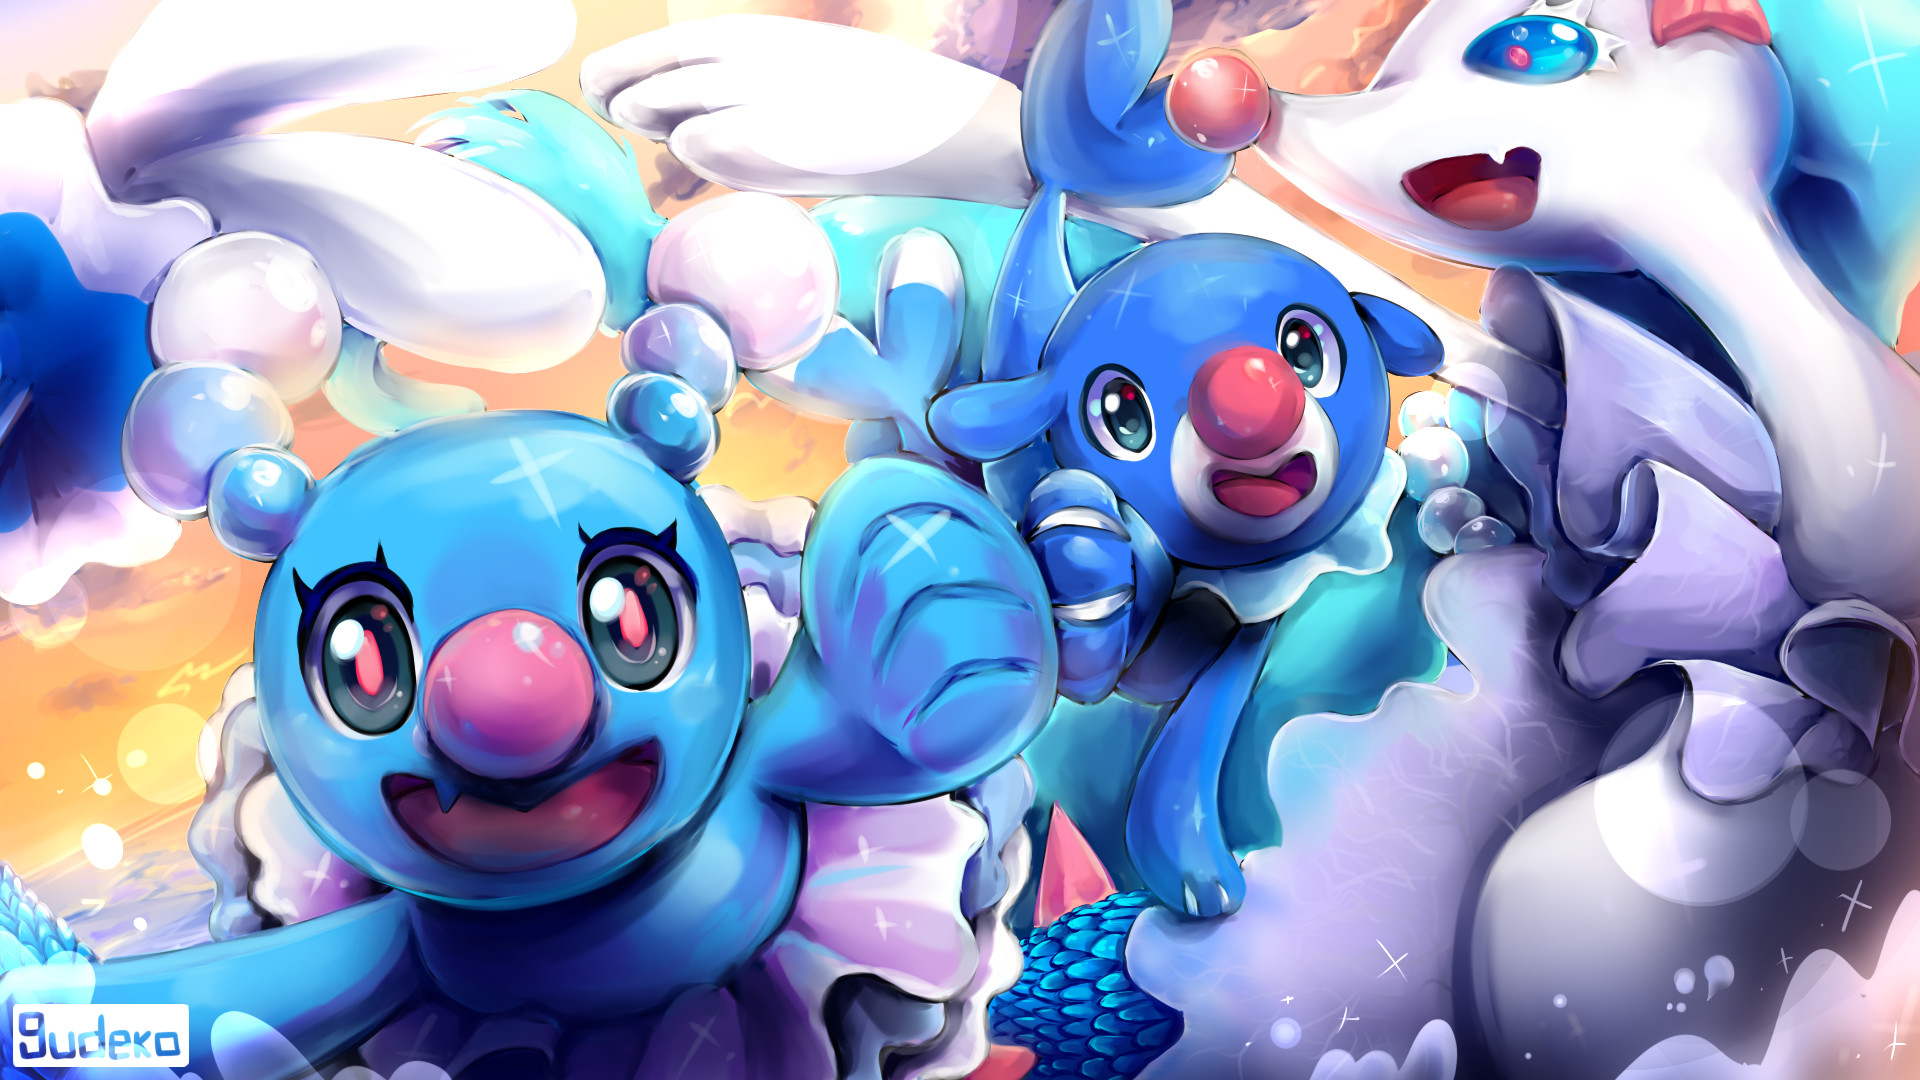 1920x1080 Video Game - Pokémon Sun and Moon Primarina (Pokémon) Brionne (Pokémon)  Popplio